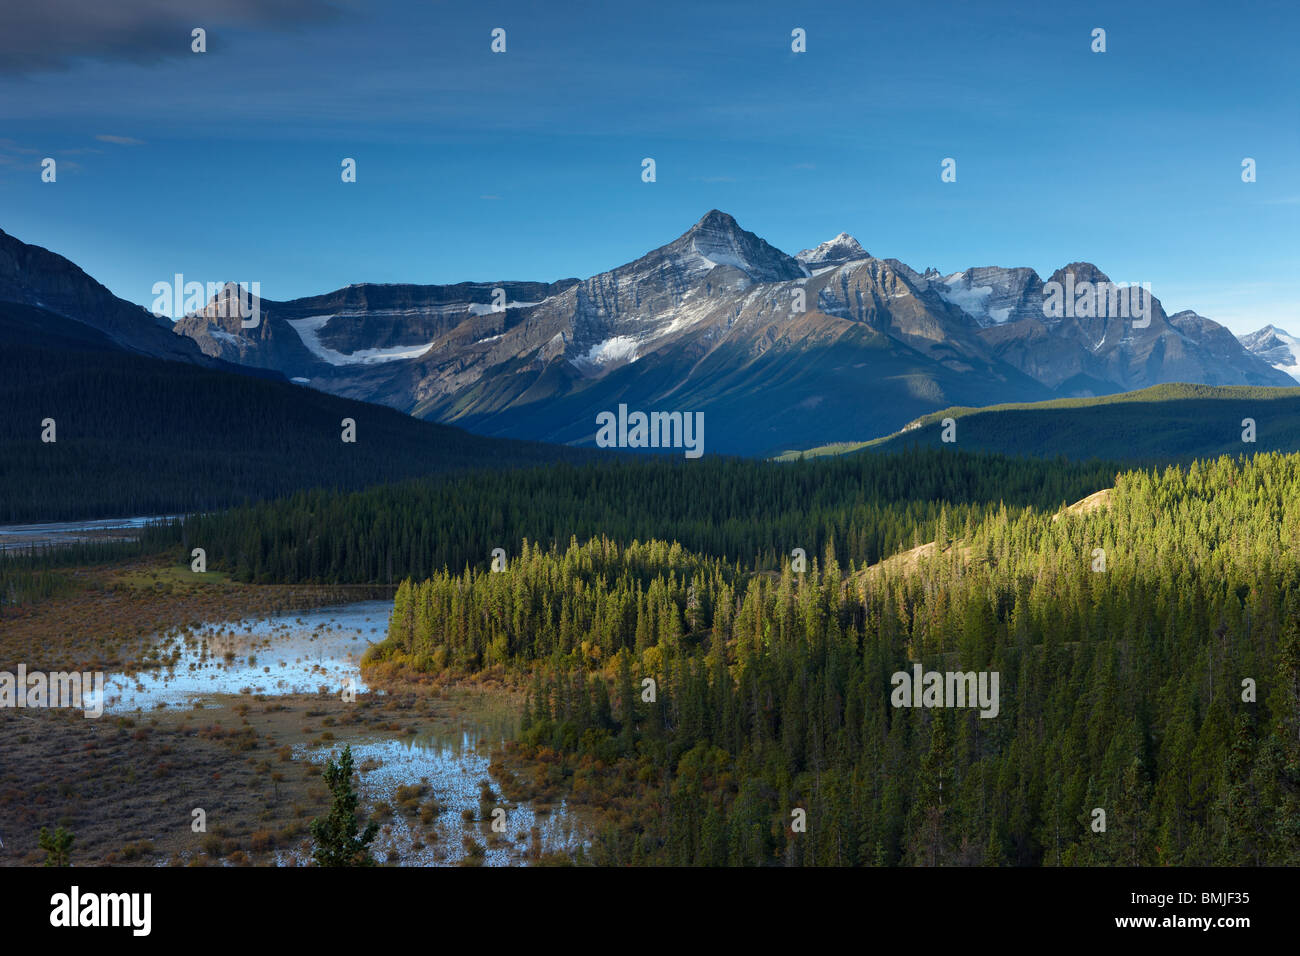 La Rivière Howse et Mont Forbes, Saskatchewan Crossing, Banff National Park, Alberta, Canada Photo Stock